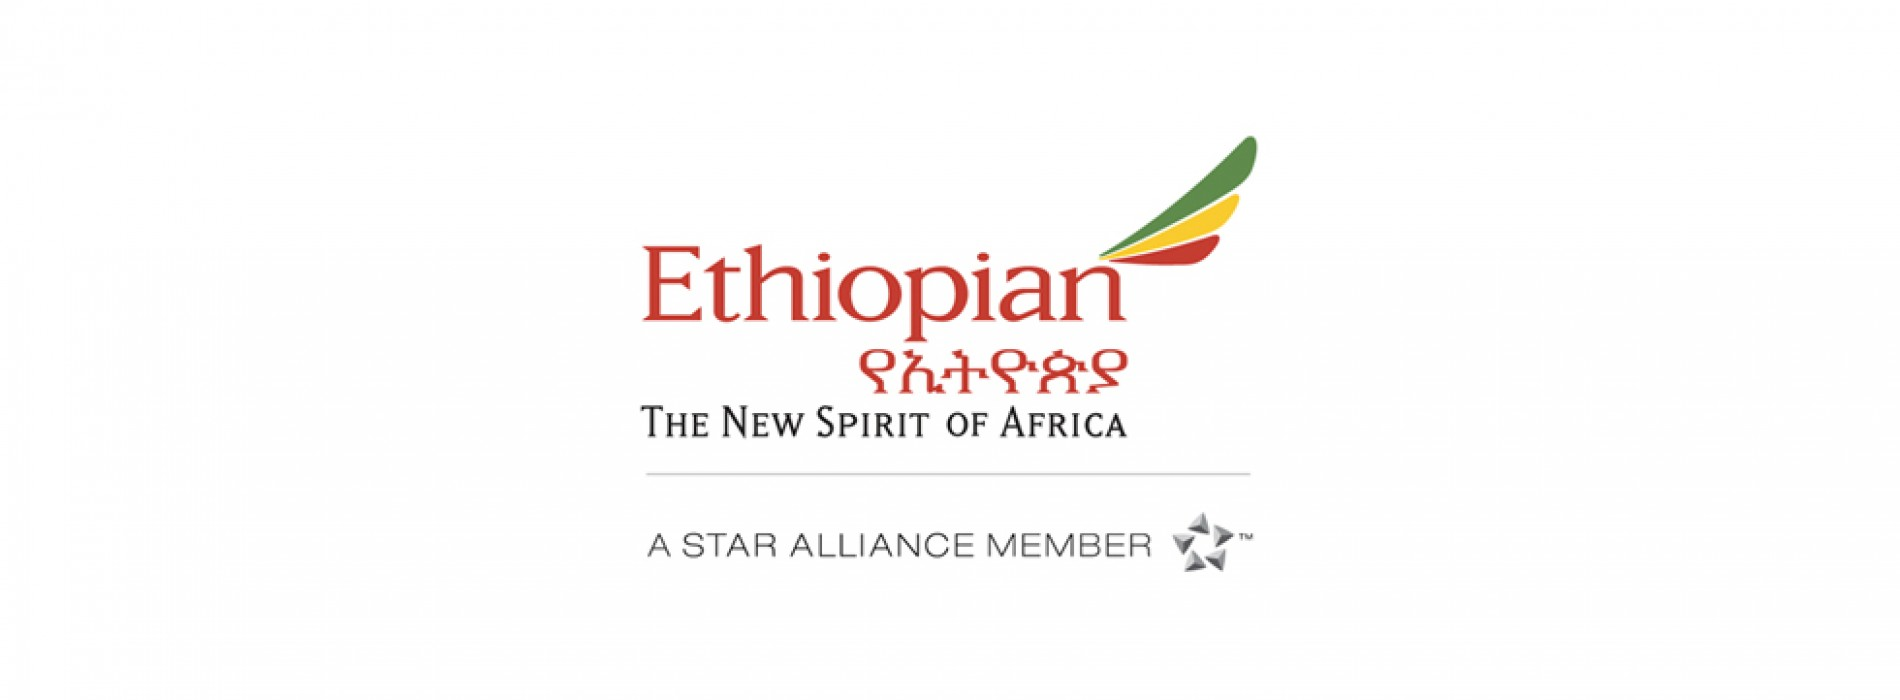 """Ethiopian Airlines wins """"The Rising Star Carrier of the Year Award"""""""